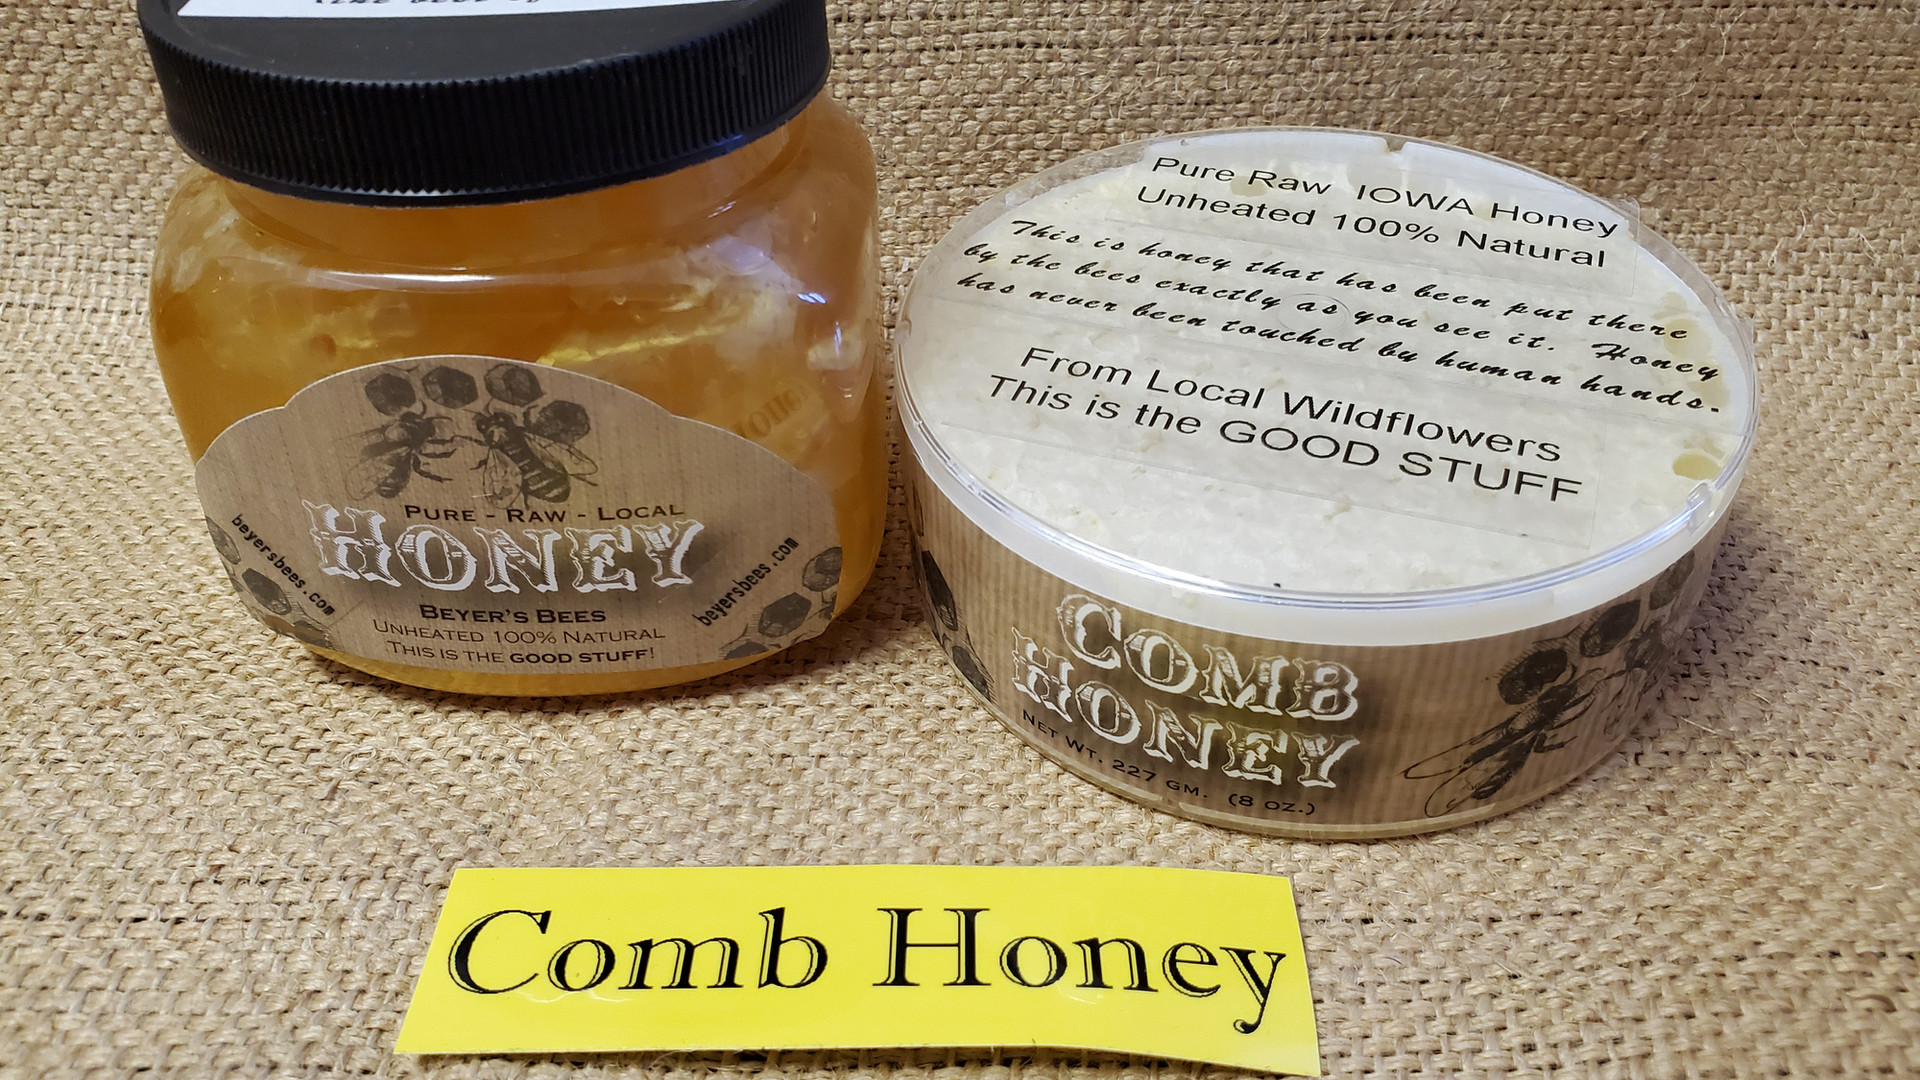 2021 Comb Honey Containers Labeled.jpg